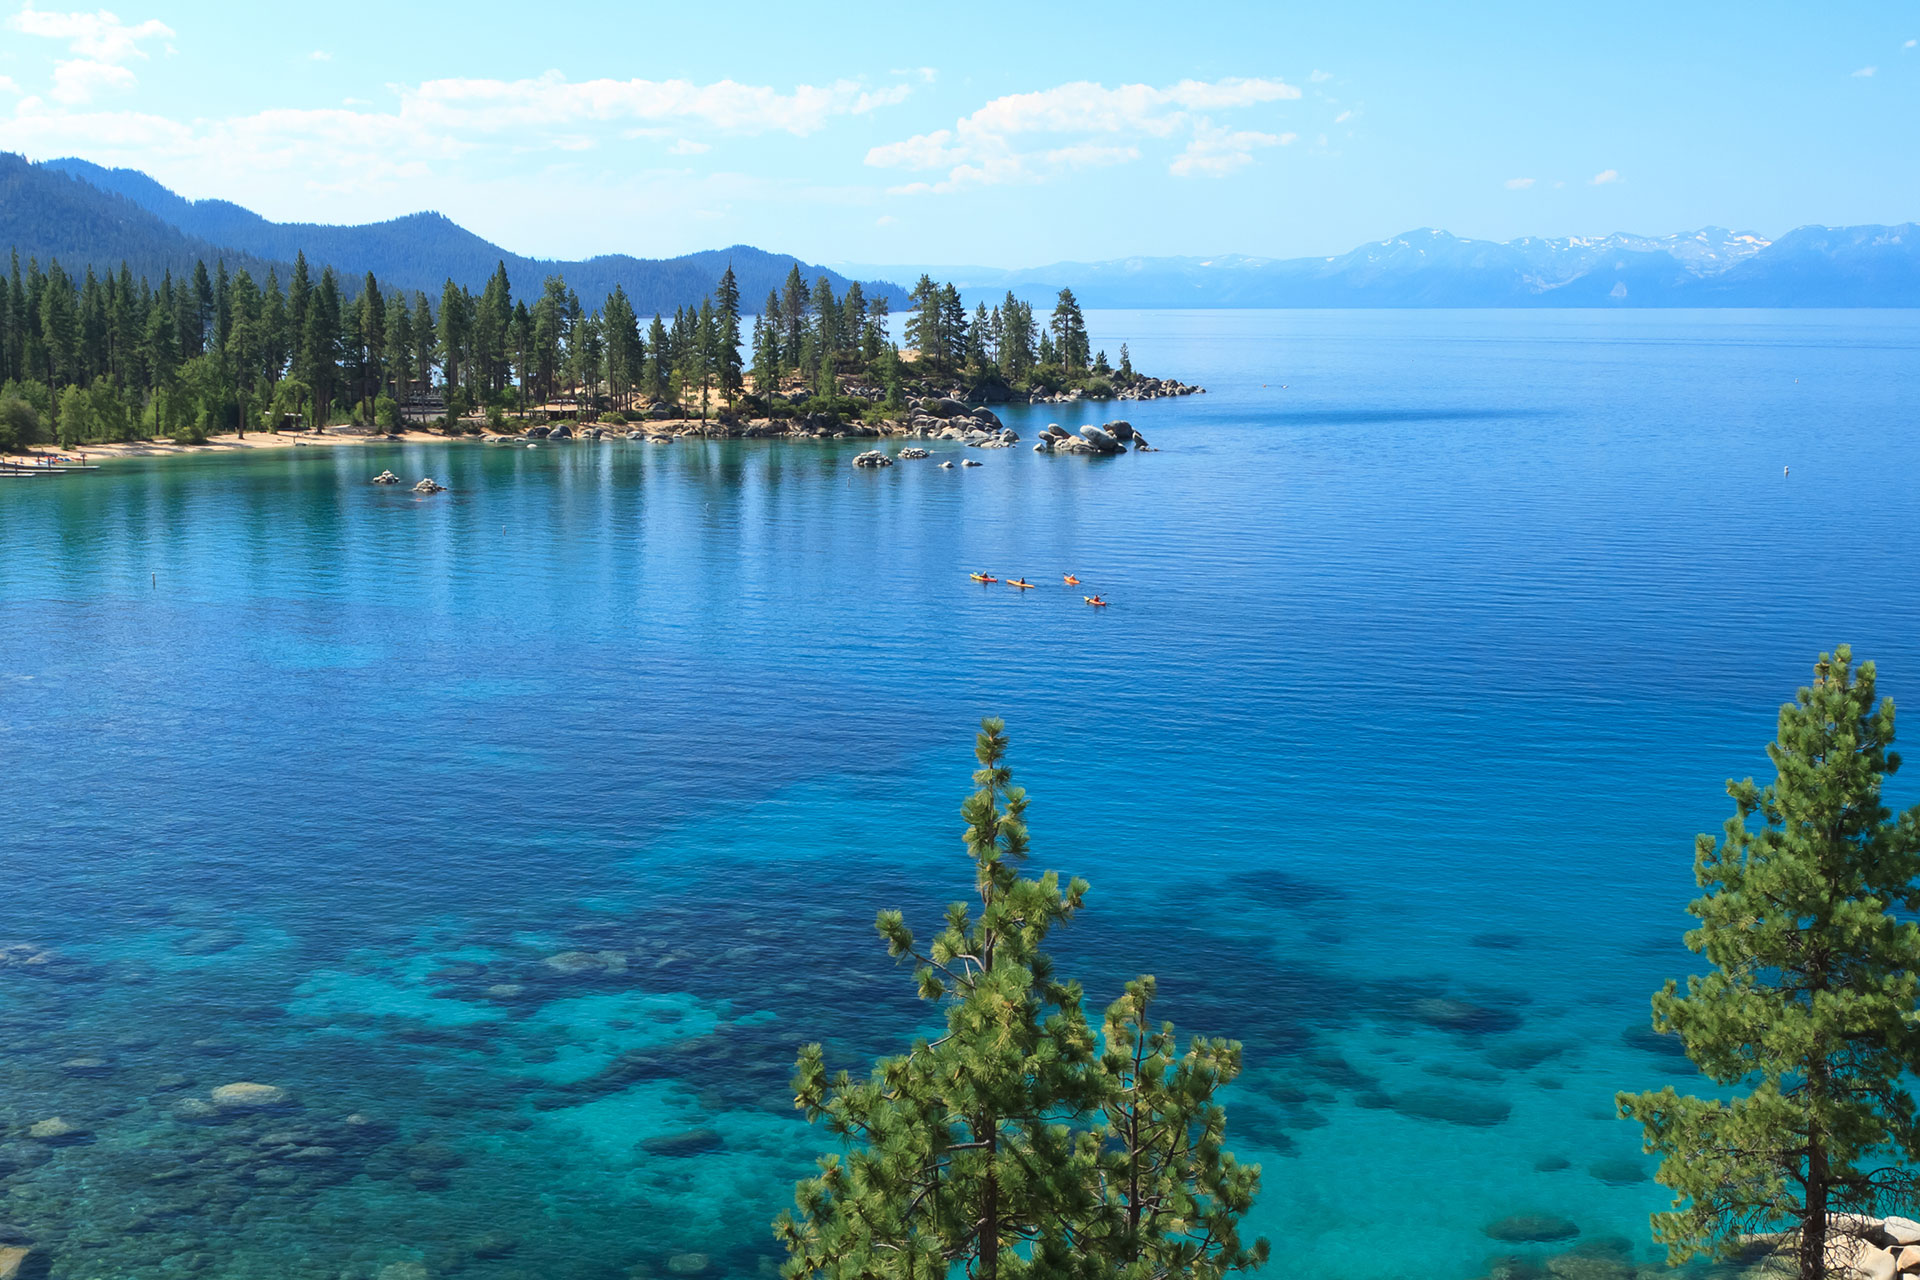 Amazing blue of Lake Tahoe